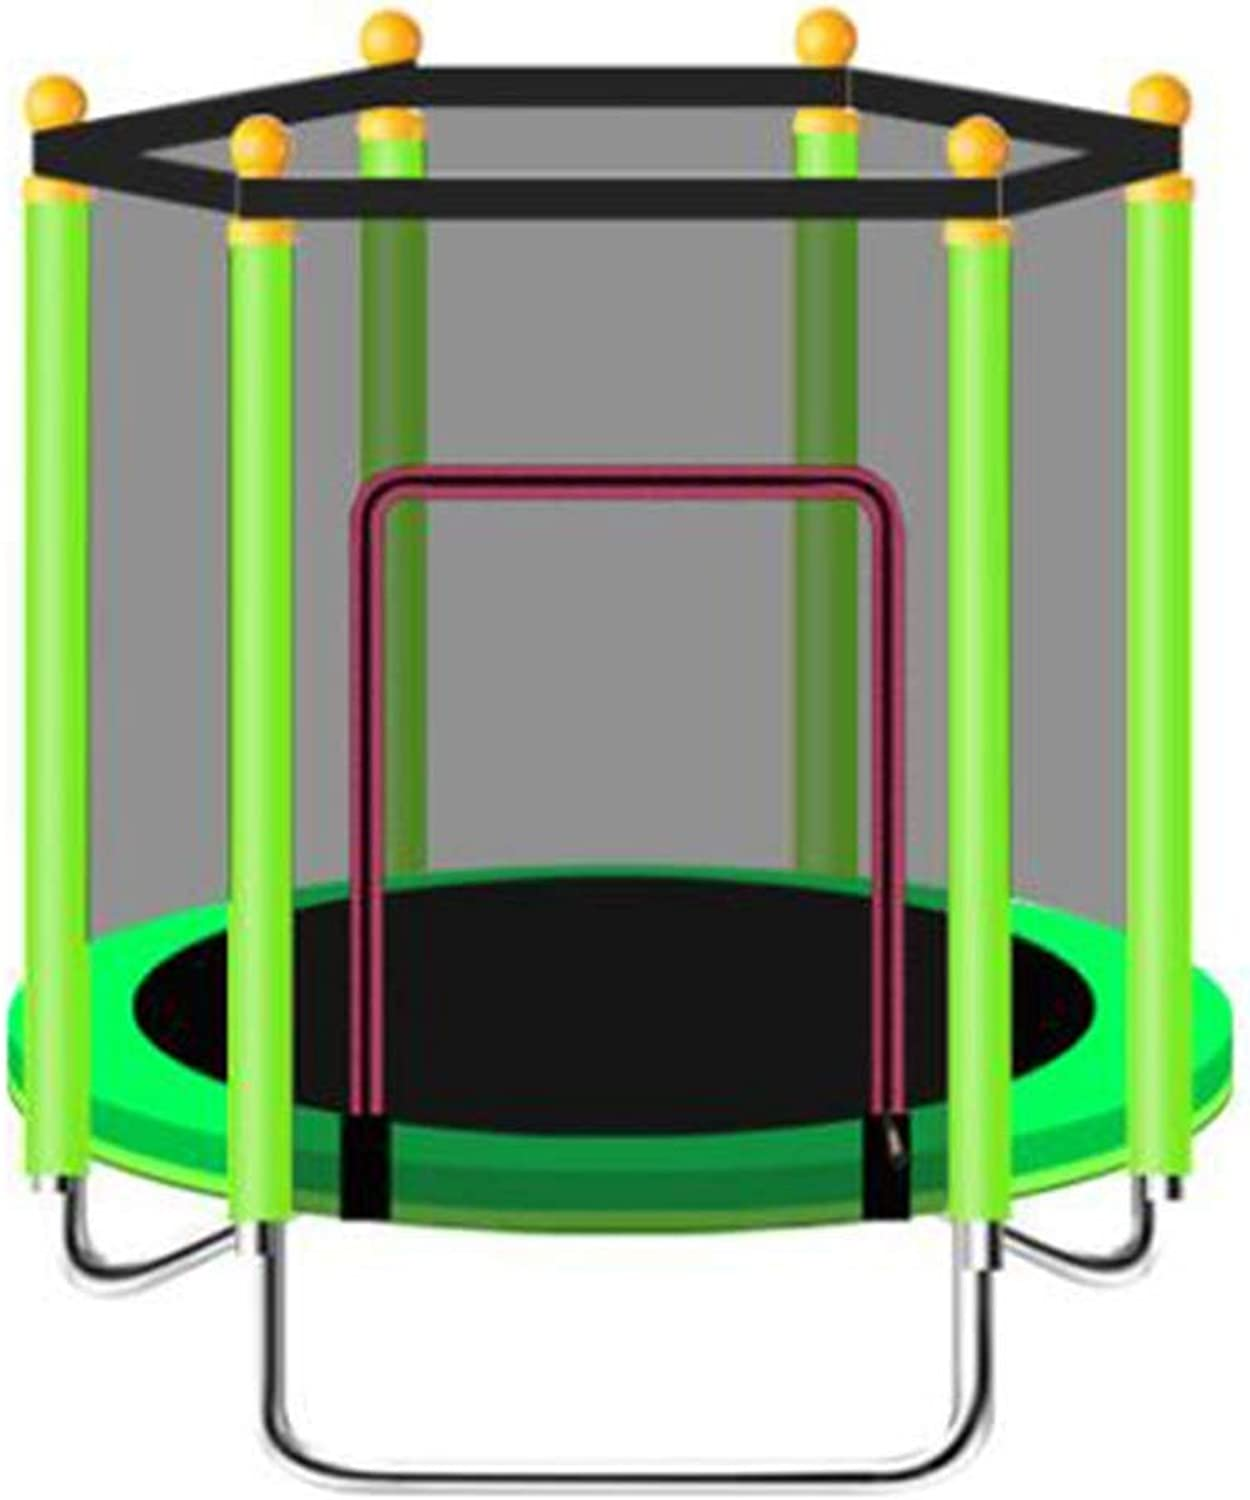 Xiaomei Trampoline Trampolines for Kids Easy to Assemble with Safety Net Fitness for Adult and Kids Ideal for Indoor Or Outdoor Used in Home, Outdoor